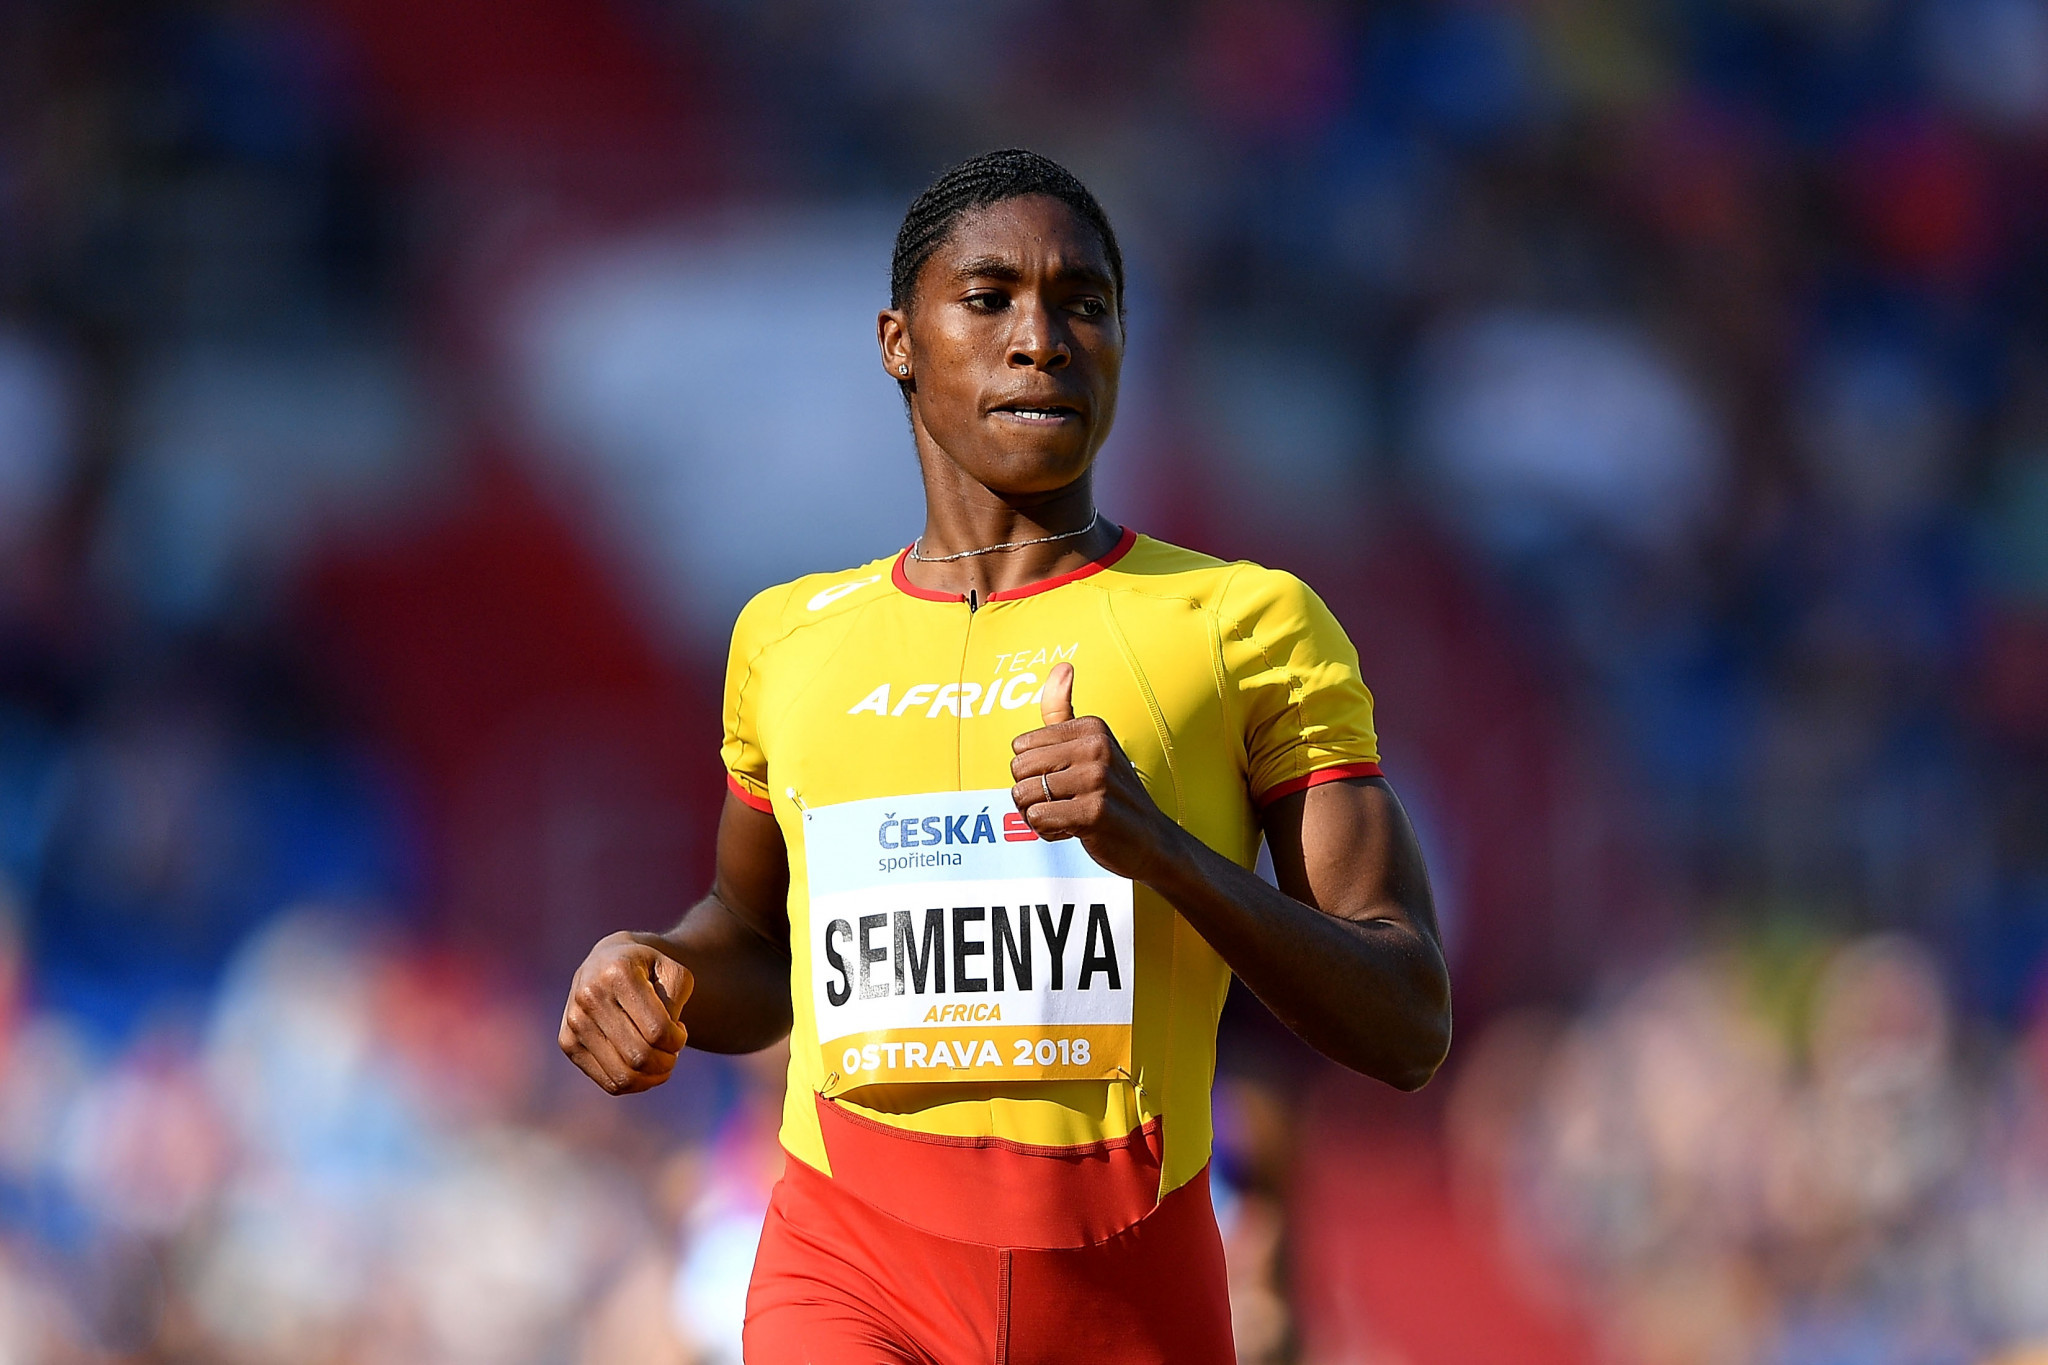 The IAAF has denied reports they are set to argue athletes such as Caster Semenya are biologically male ©Getty Images